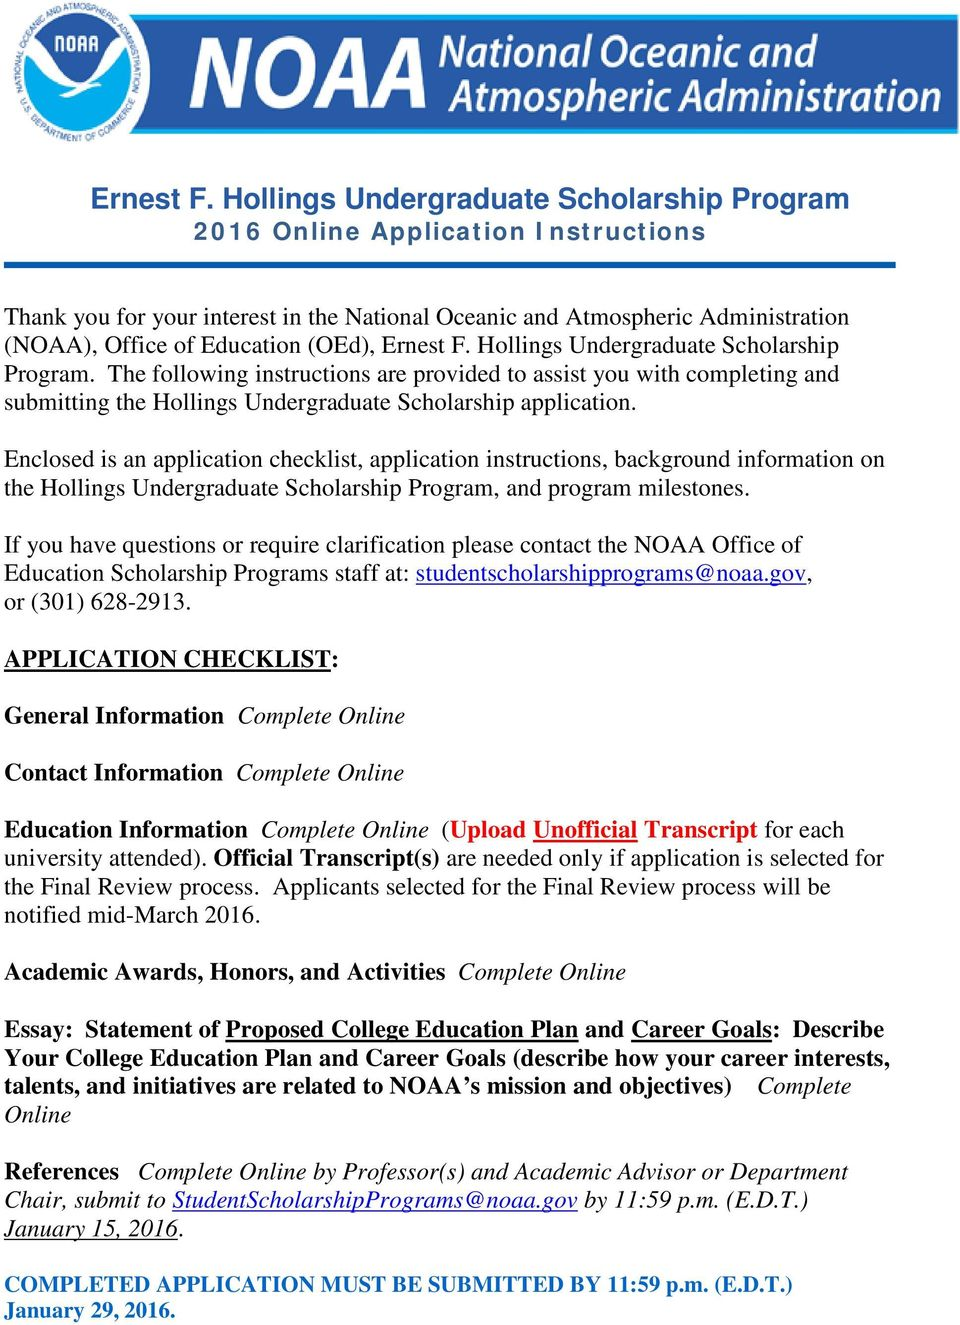 Hollings Undergraduate Scholarship Program. The following instructions are provided to assist you with completing and submitting the Hollings Undergraduate Scholarship application.